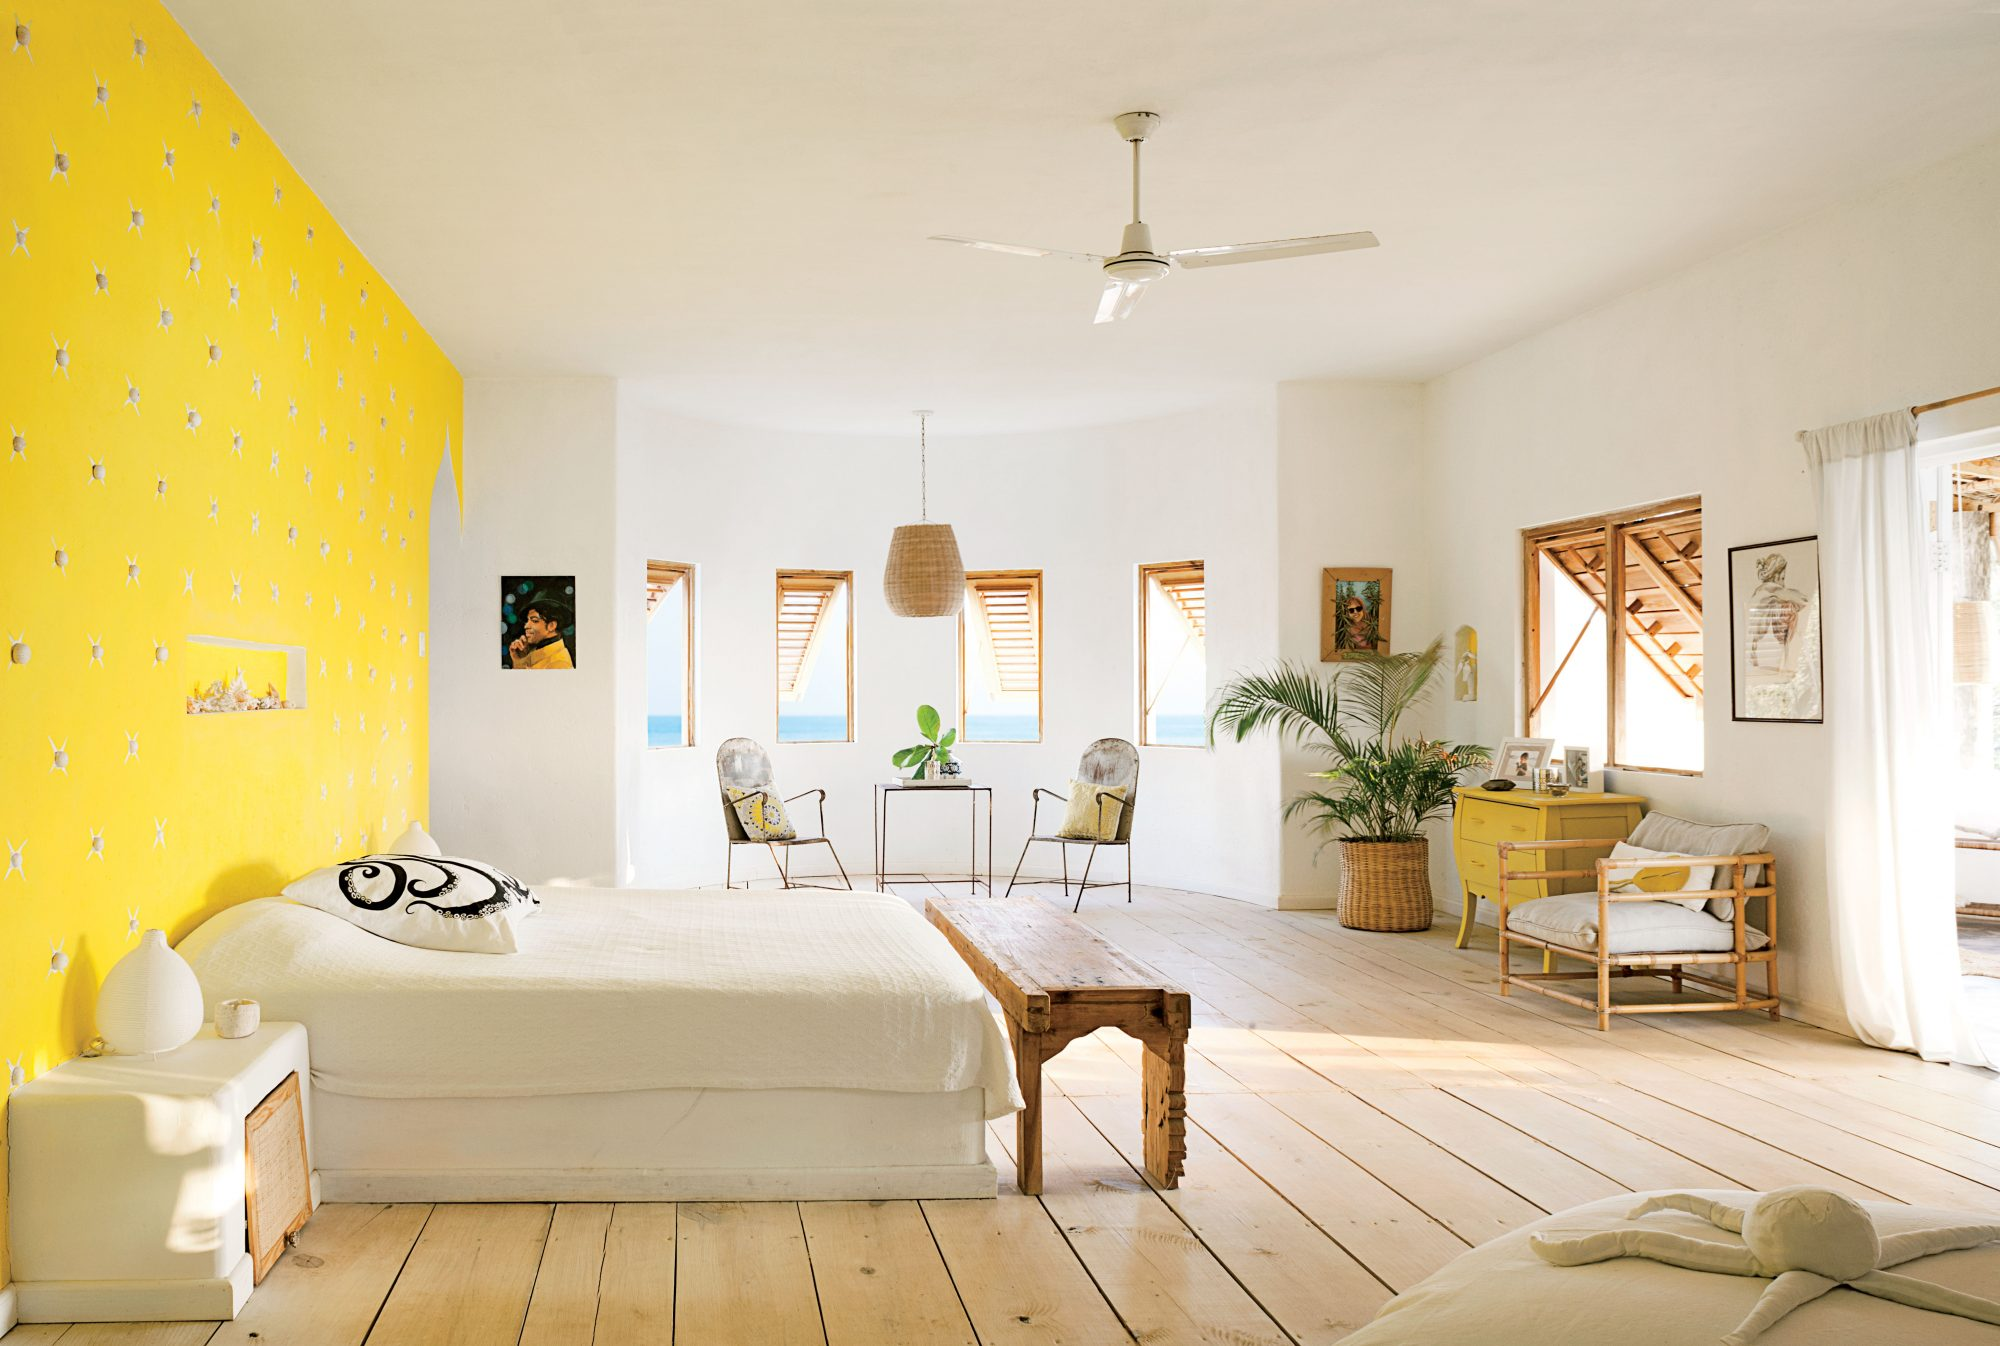 Sea urchins are affixed to the bright yellow wall of this Jamaican master bedroom, adding a fun layer of ocean-inspired texture. The rest of the room, decked in neutral tones, balances the wall's bold color.